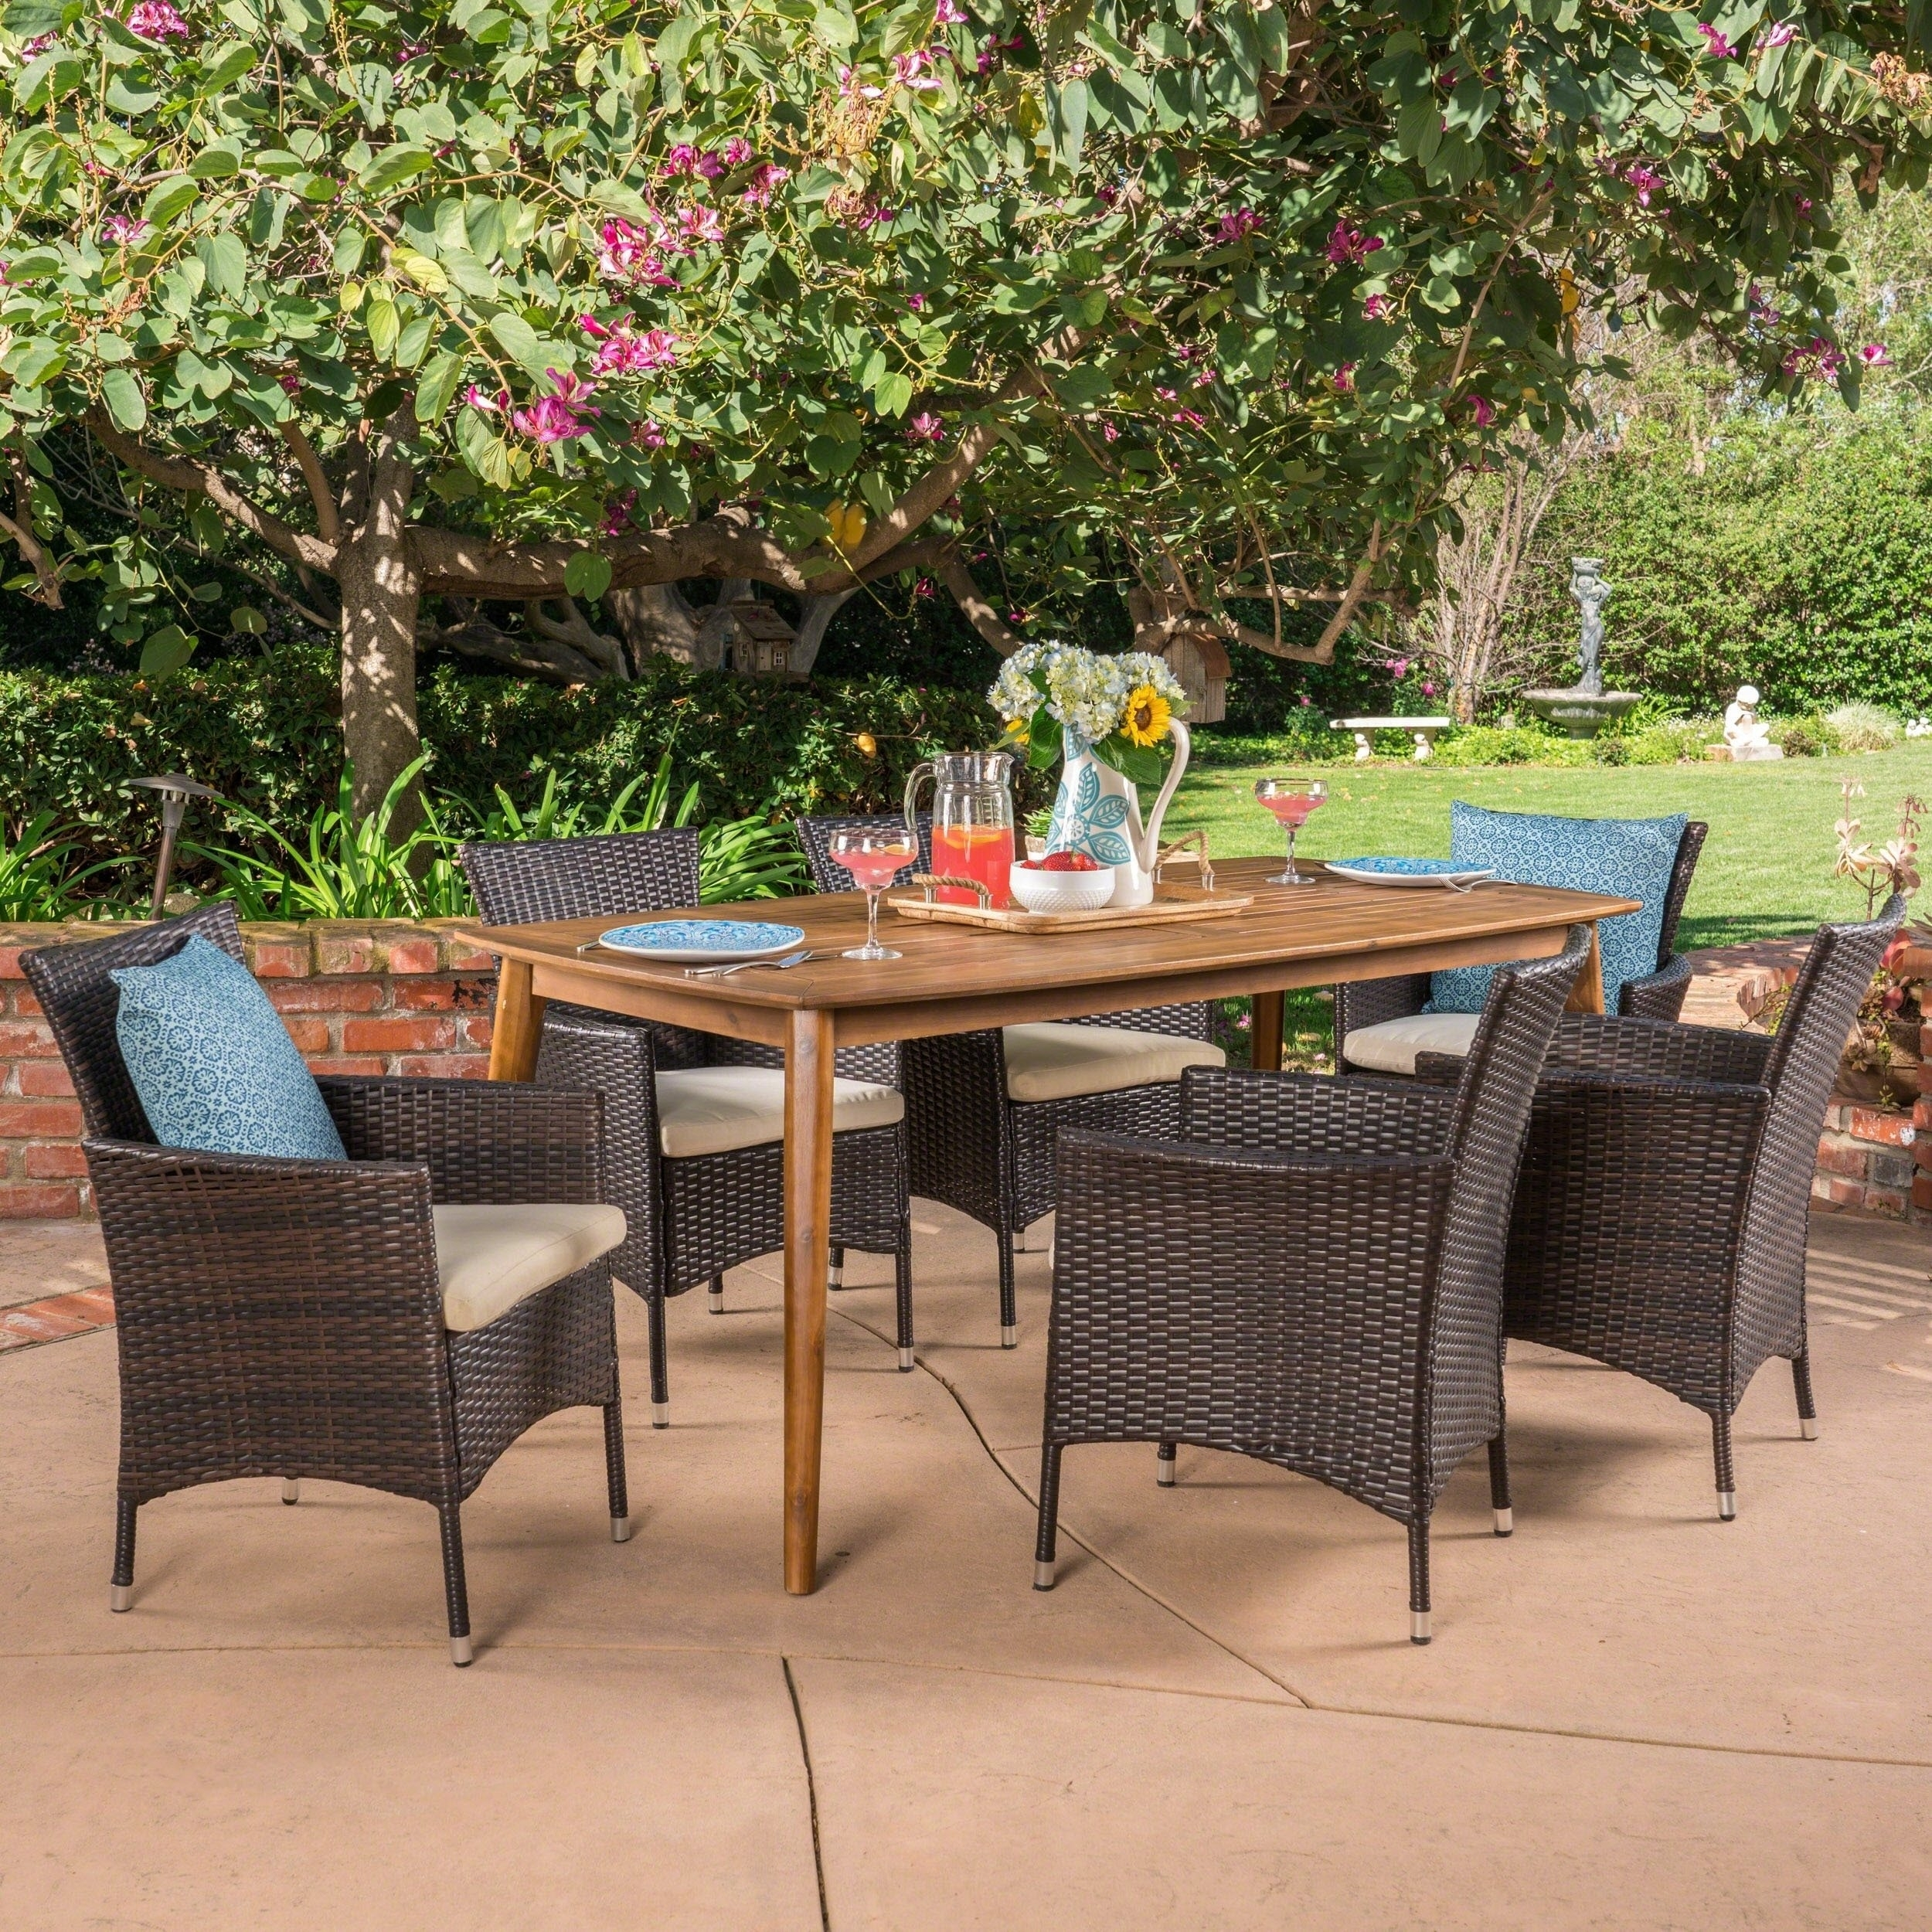 Shop Jaxon Outdoor 7 Piece Multibrown Pe Wicker Dining Set With Pertaining To Latest Jaxon Grey 6 Piece Rectangle Extension Dining Sets With Bench & Wood Chairs (Image 17 of 20)